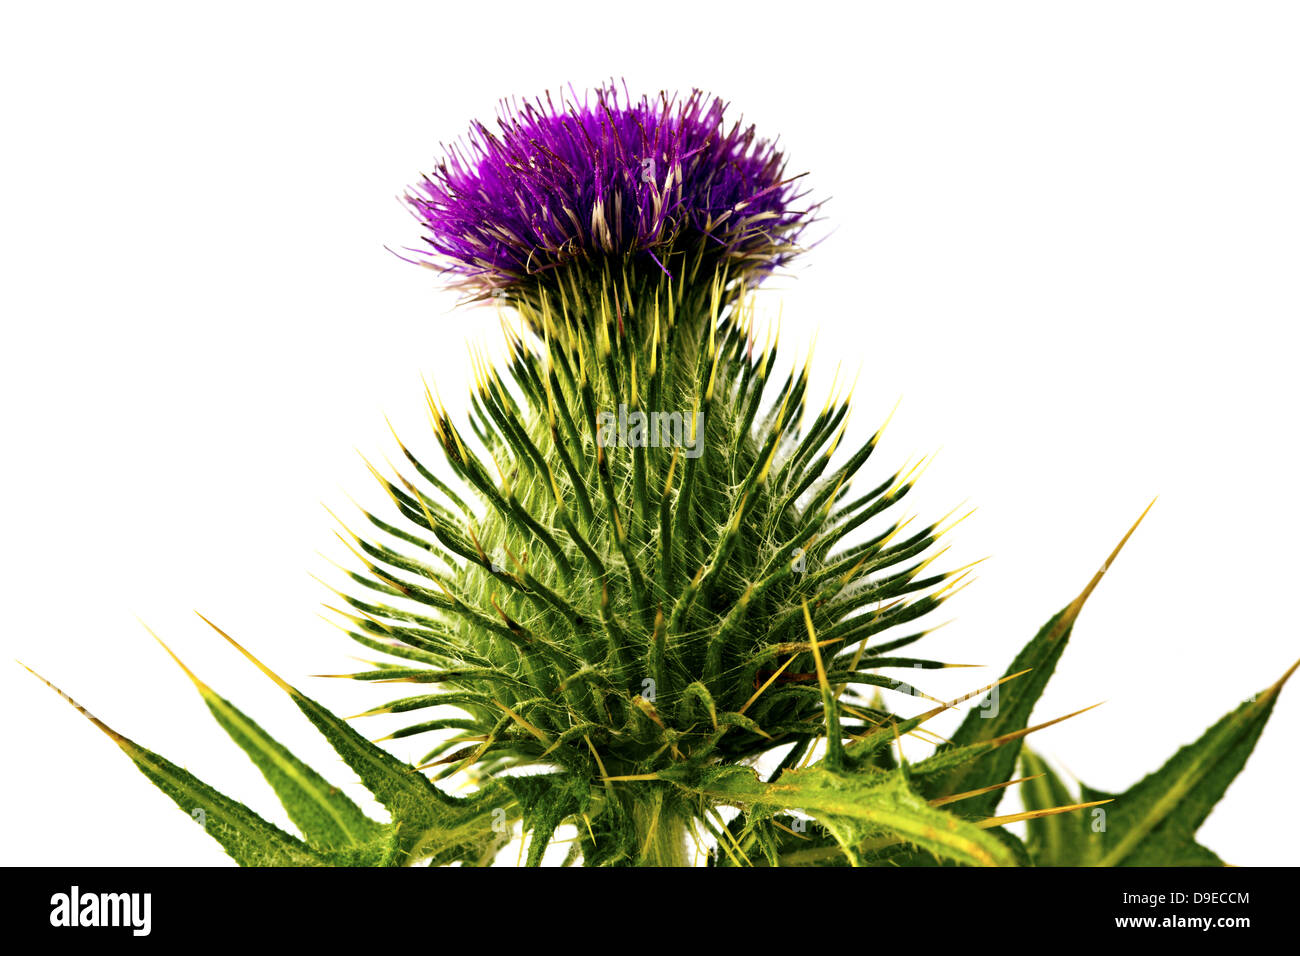 Silybum marianum - milk thistle flower isolated on white. - Stock Image